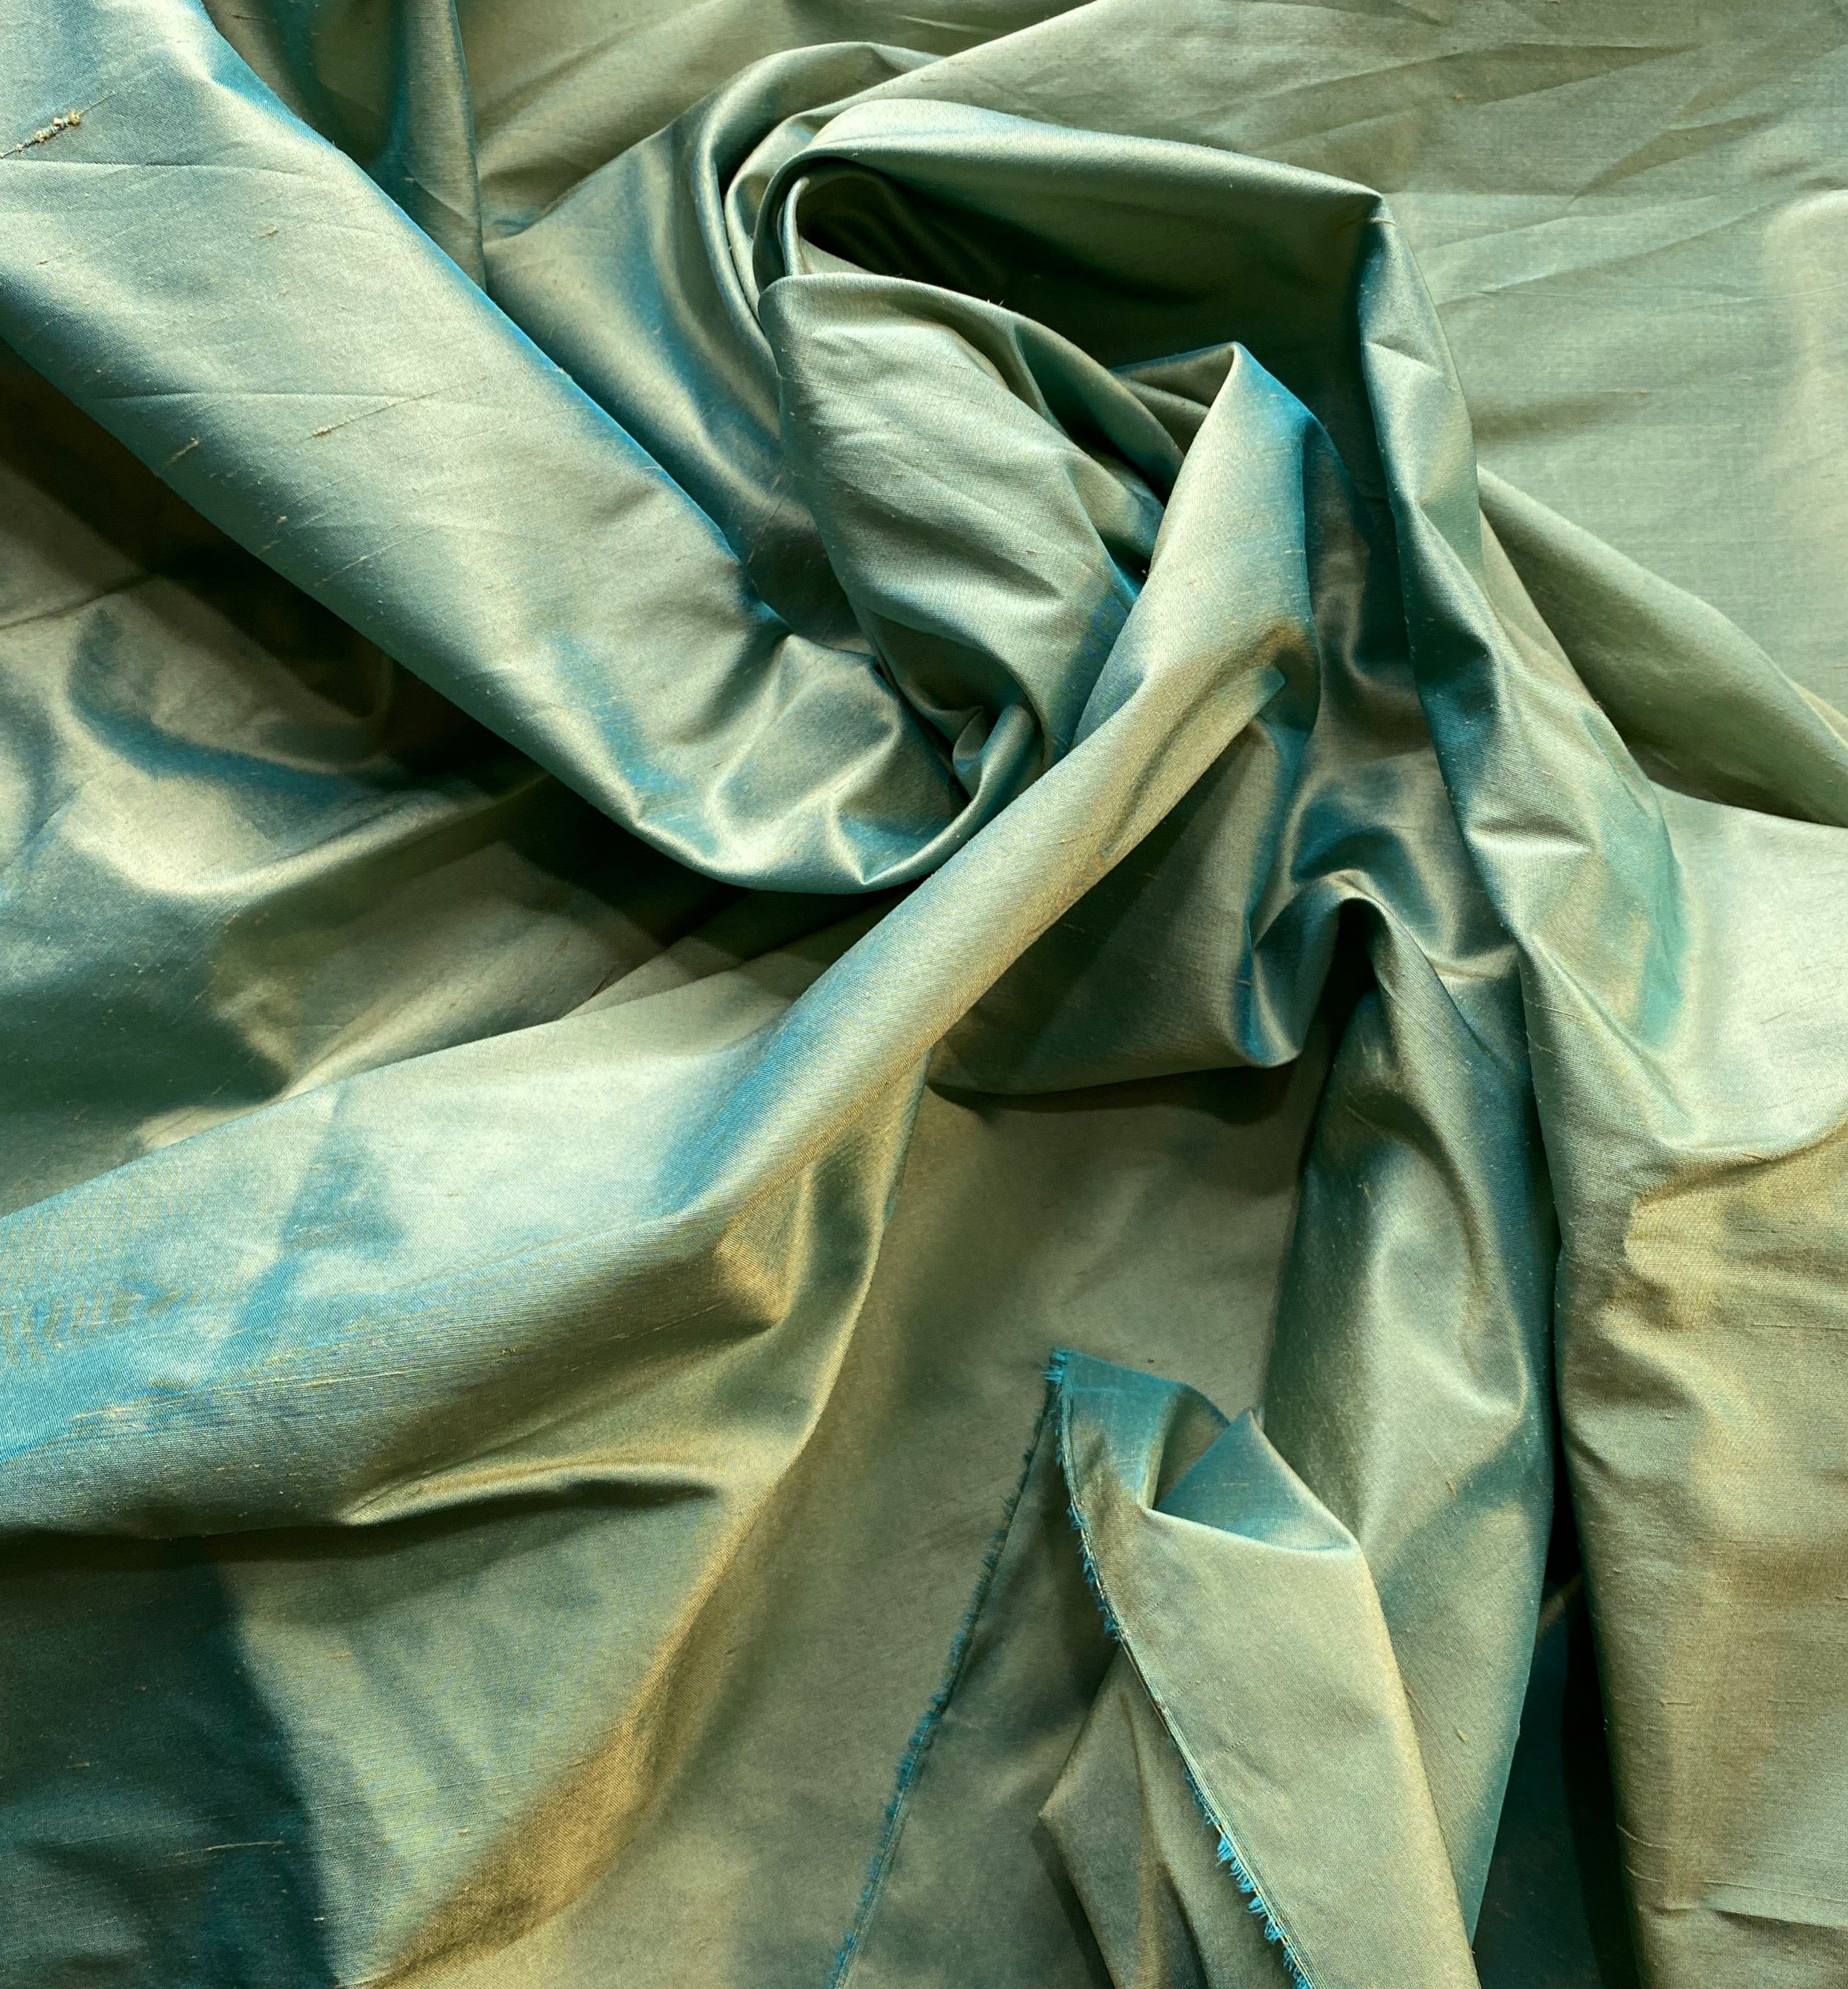 NEW Designer 100% Silk Dupioni Fabric in Light Turquoise with Peach Iridescence